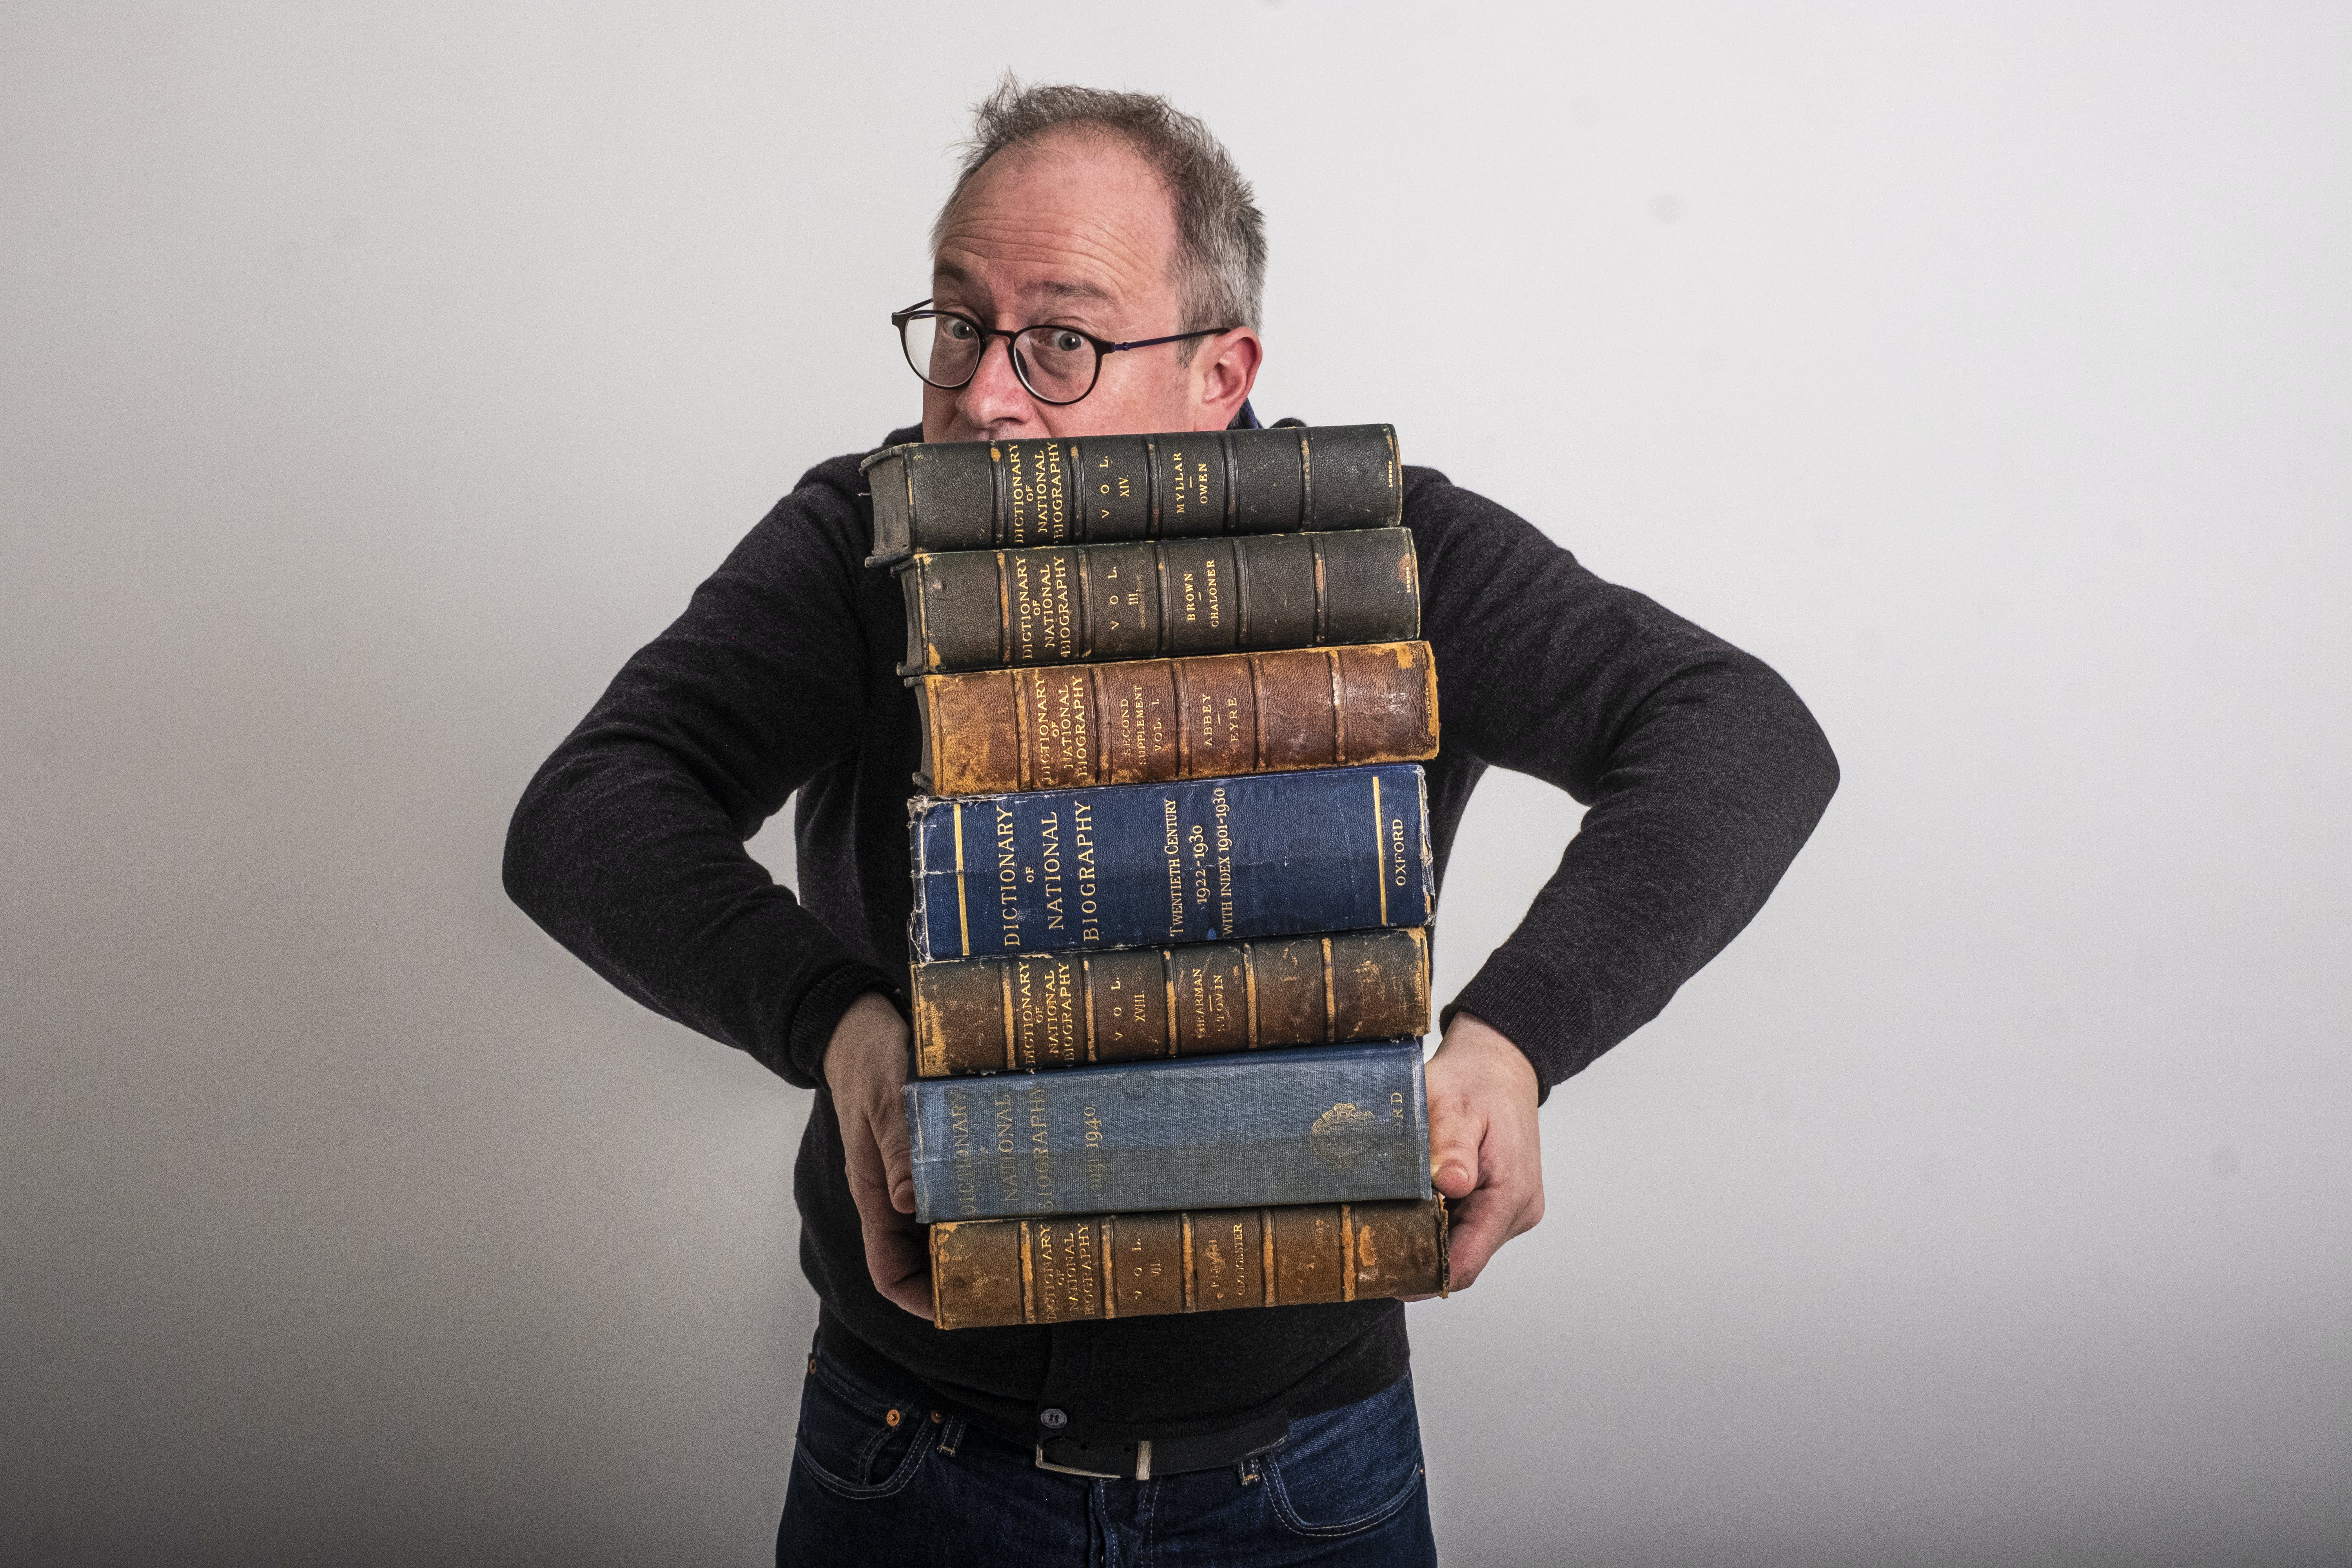 Robin Ince holding a big stack of old books.